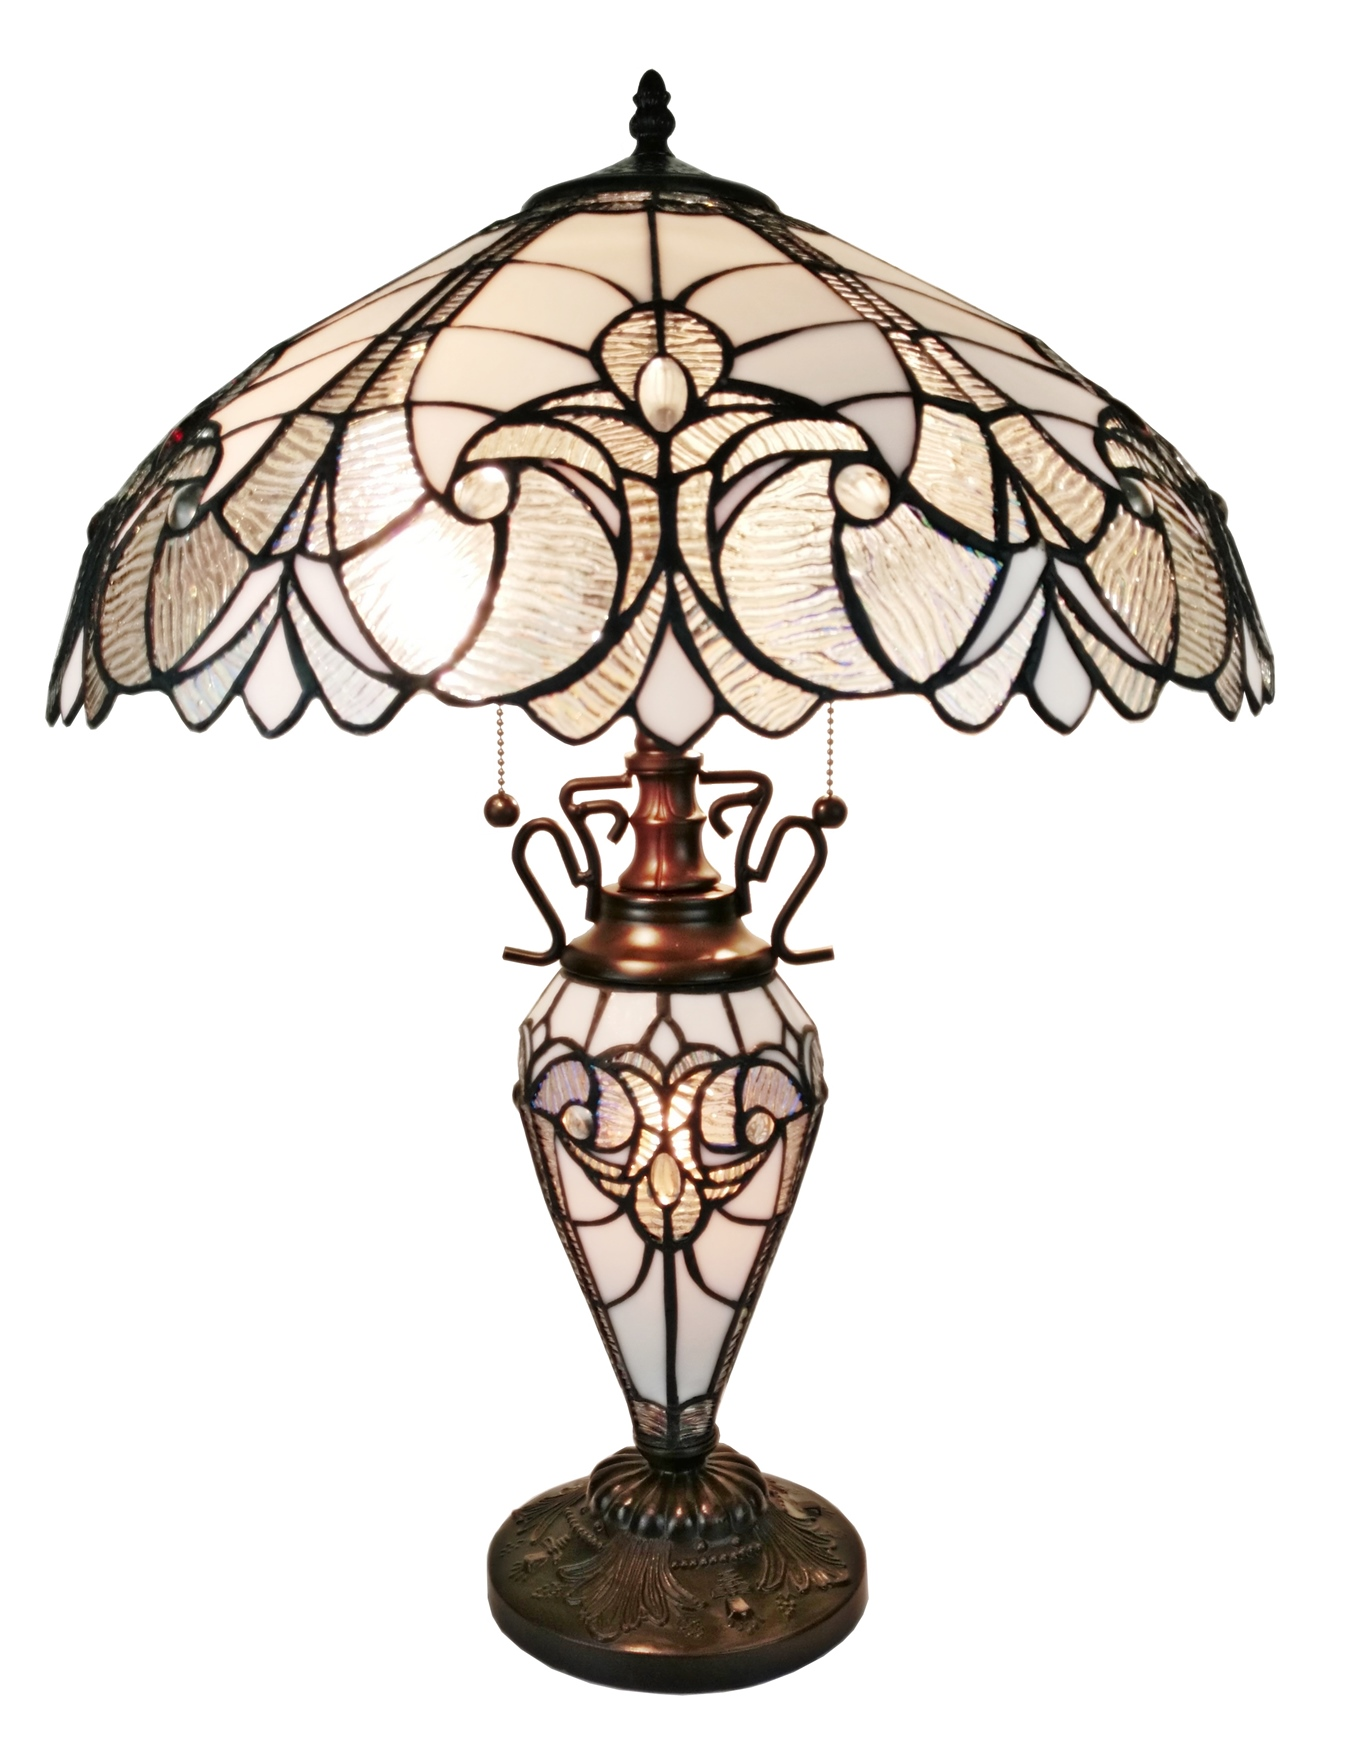 Tiffany Style Floral White Double Lit Table Lamp 23 Inches High